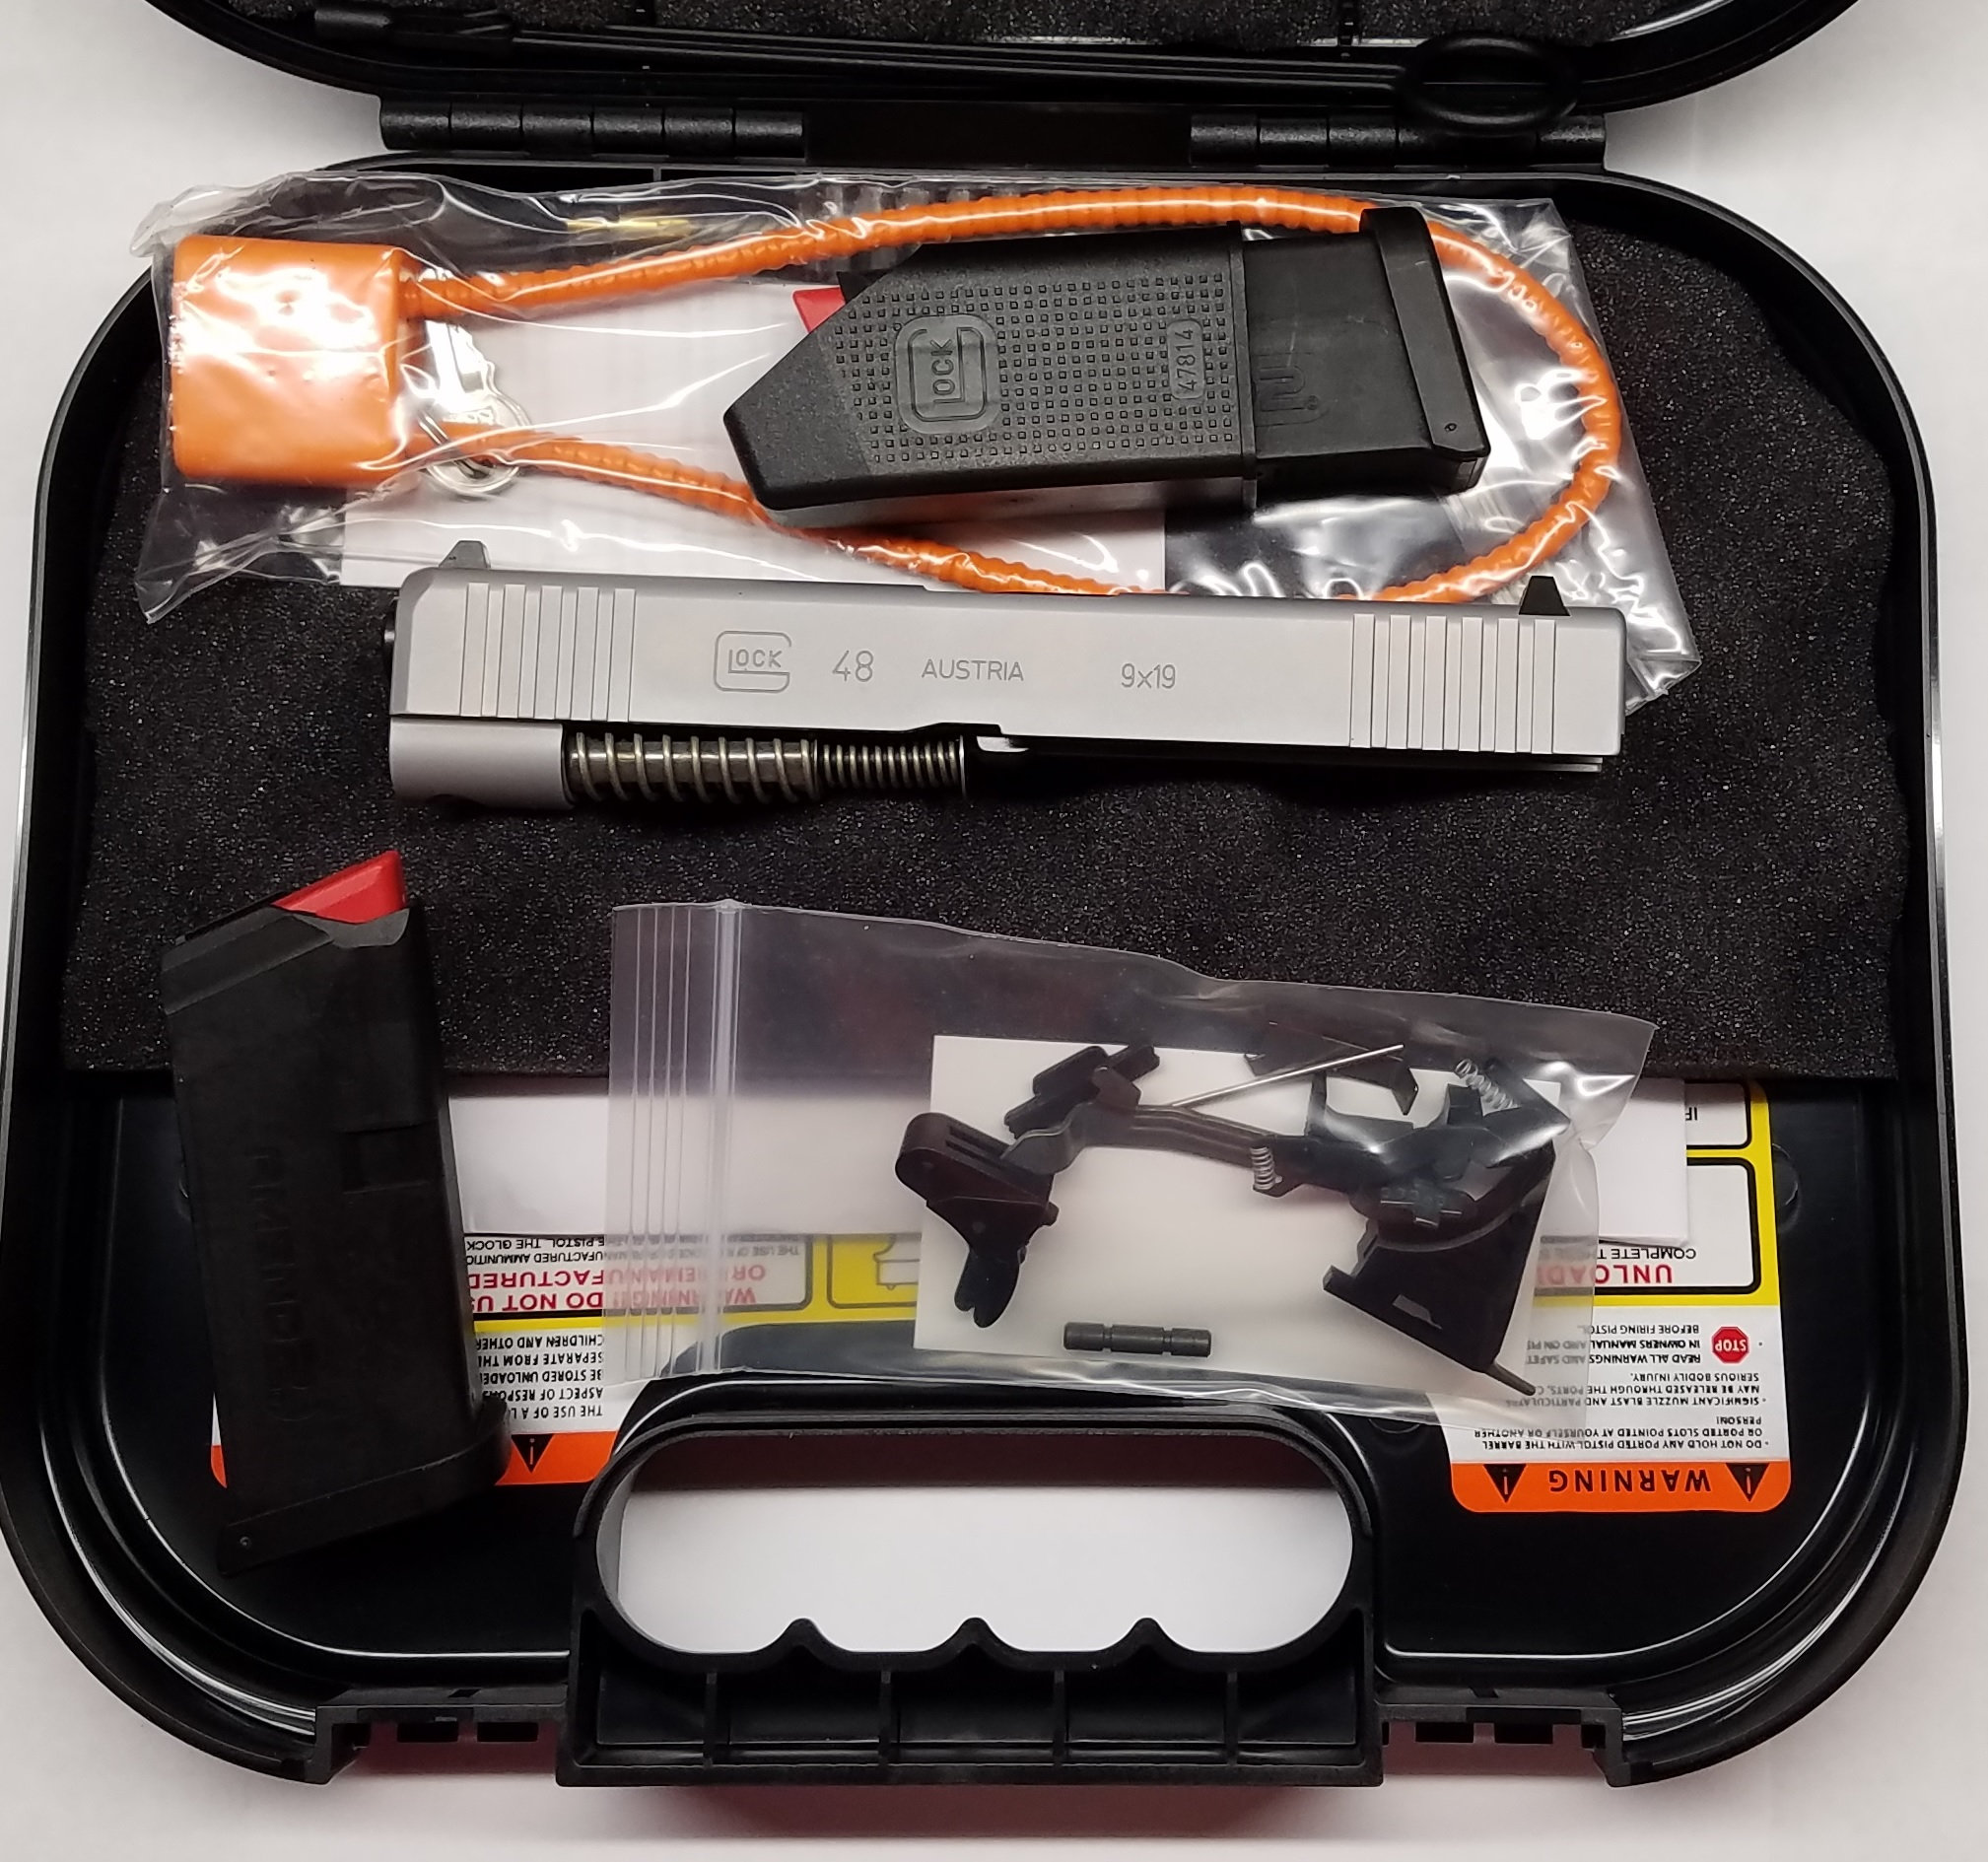 Glock 48 Build Kit to Build on SS80 or 43 Frame